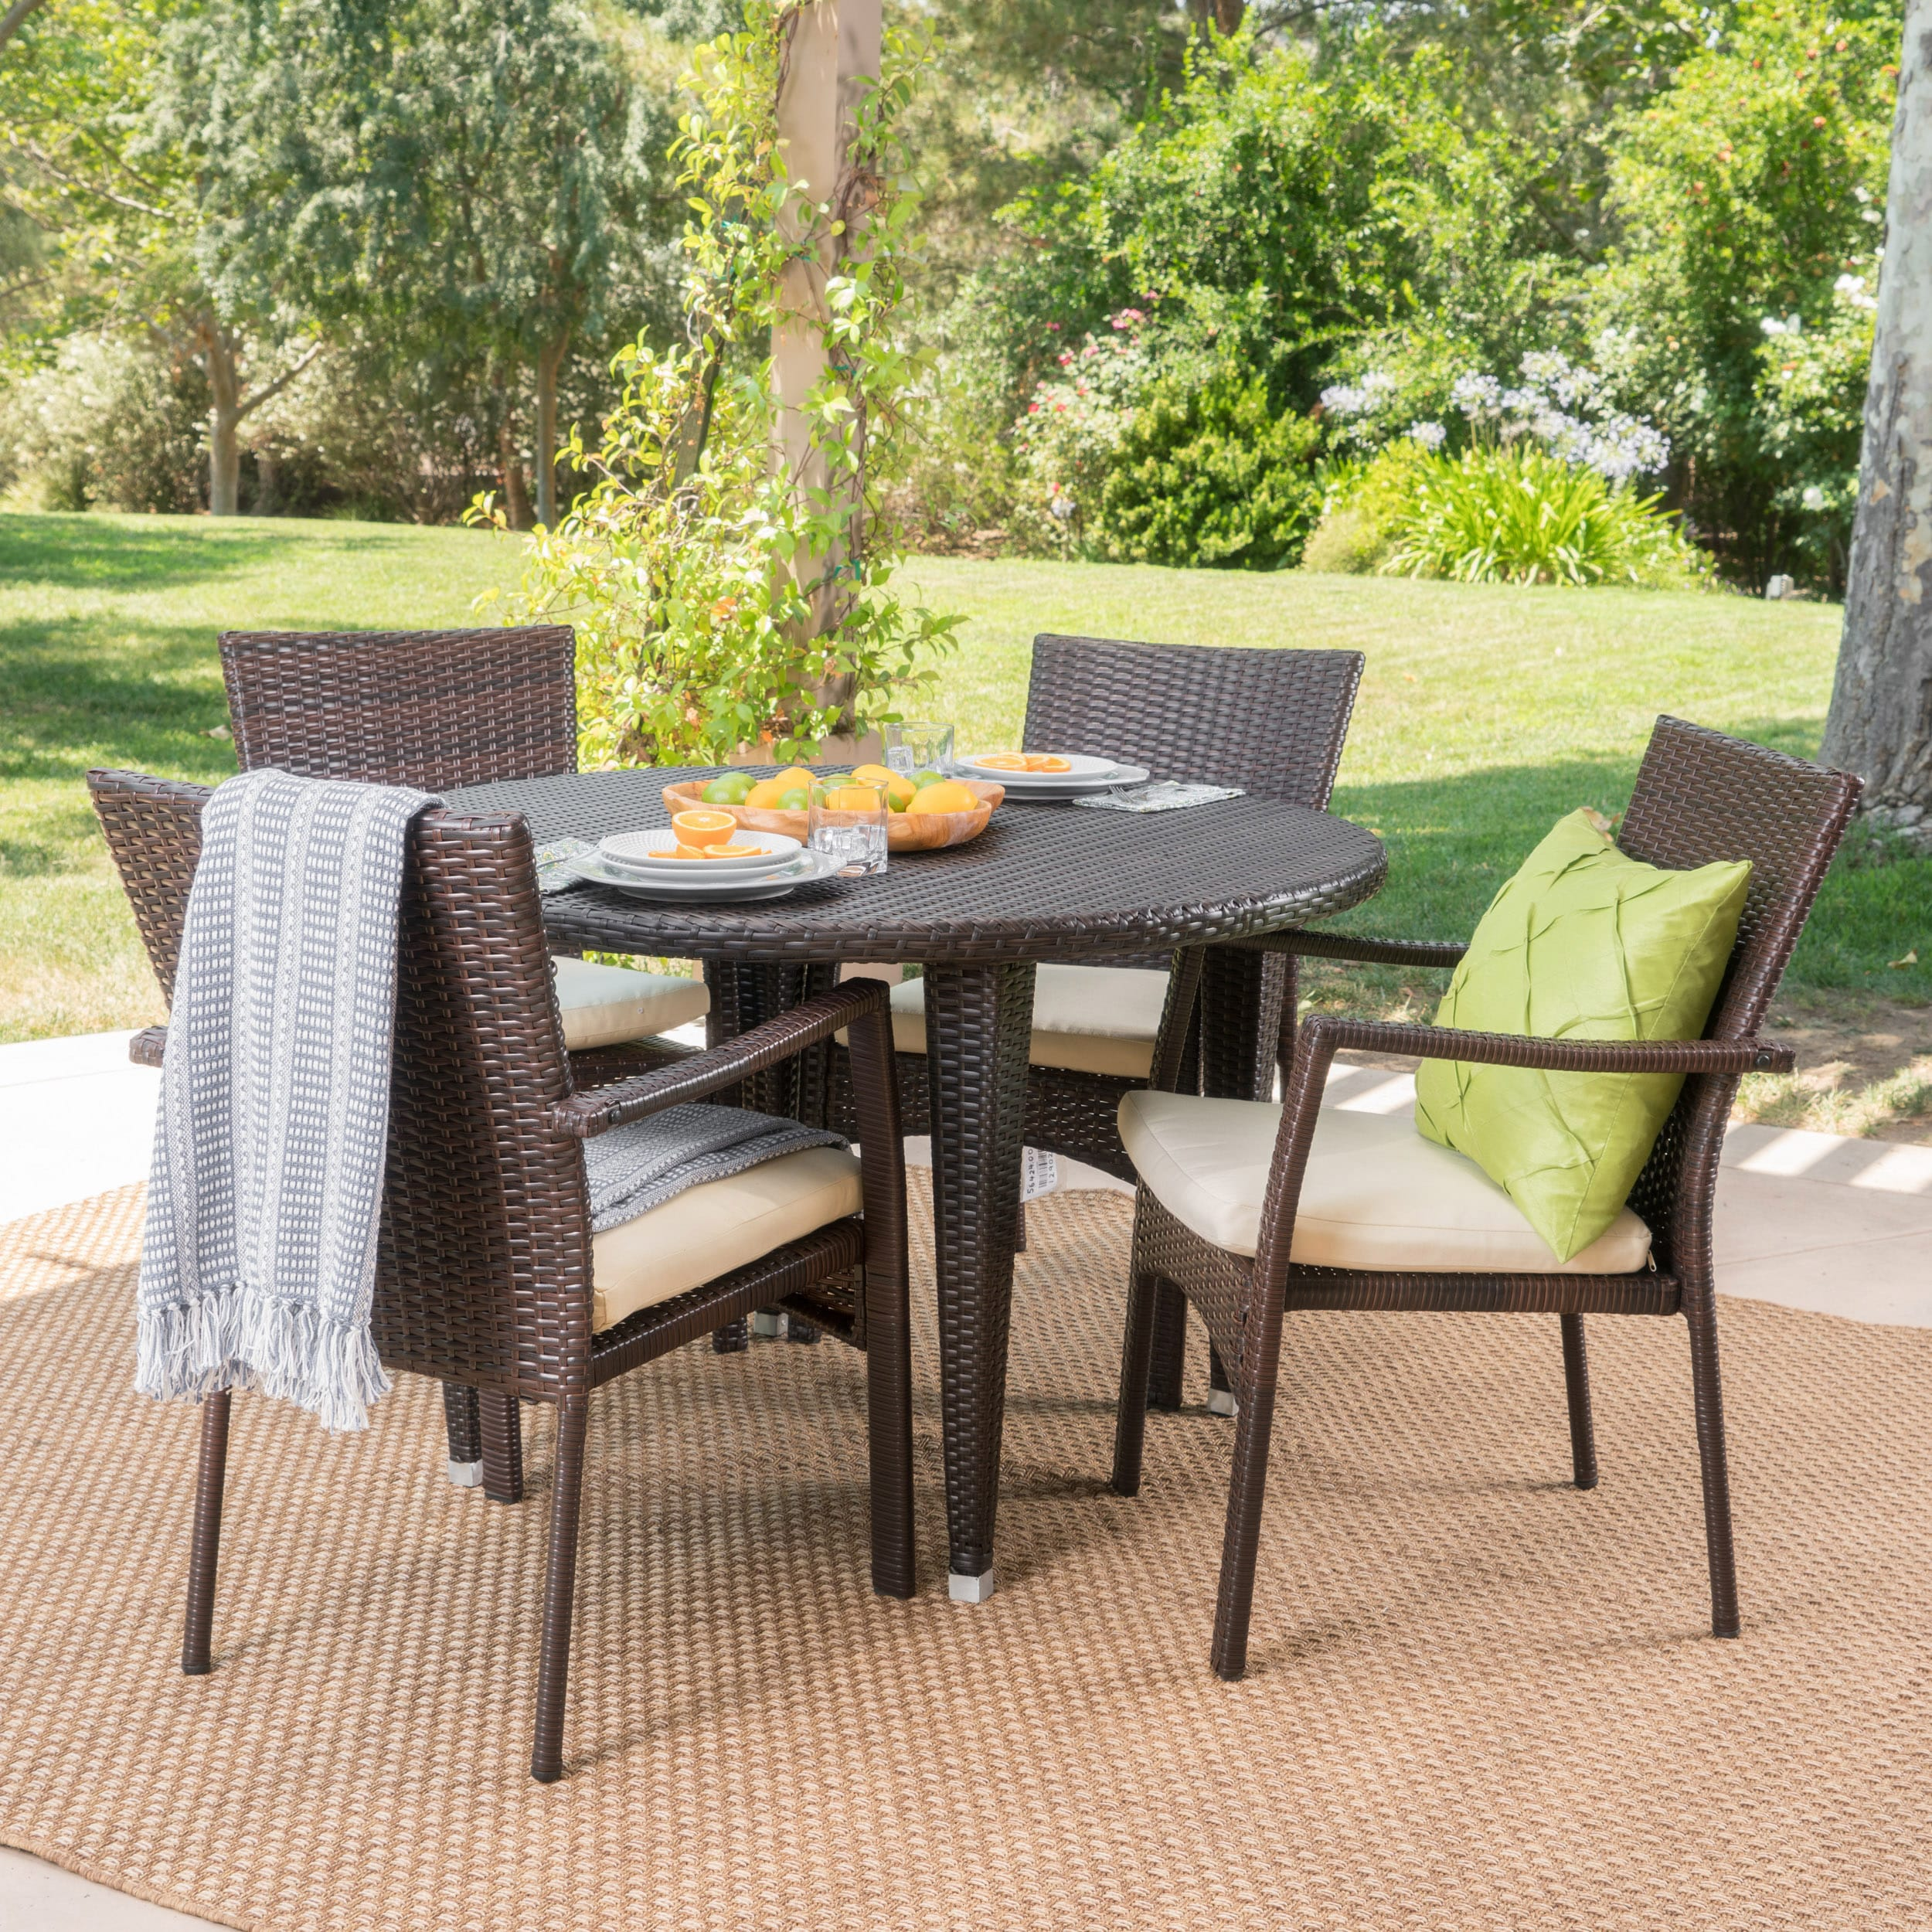 Christopher Knight Home Mussel Rock Outdoor 5-piece Round Dining Set with Cushions by